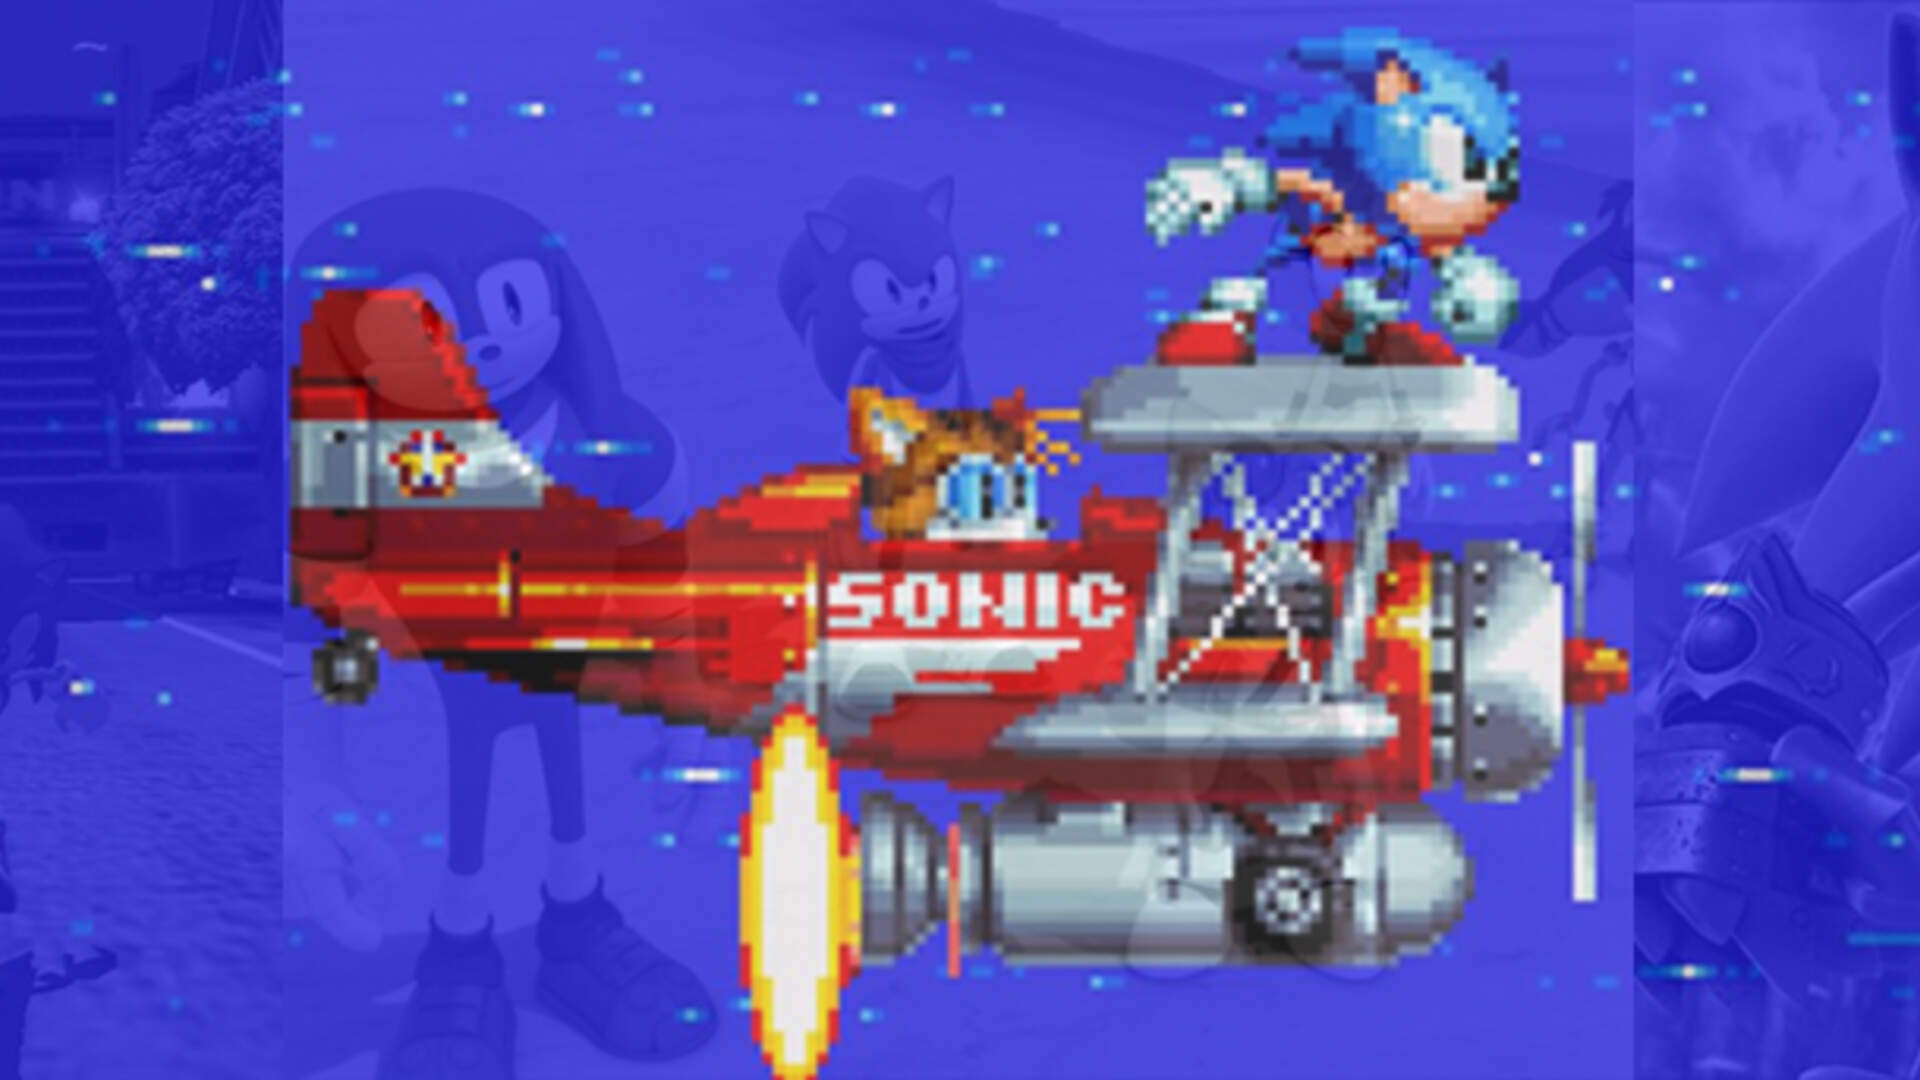 The People Who Never Gave up on Sonic: A Deep Dive Into the Most Curious (and Passionate) Fandom on the Internet